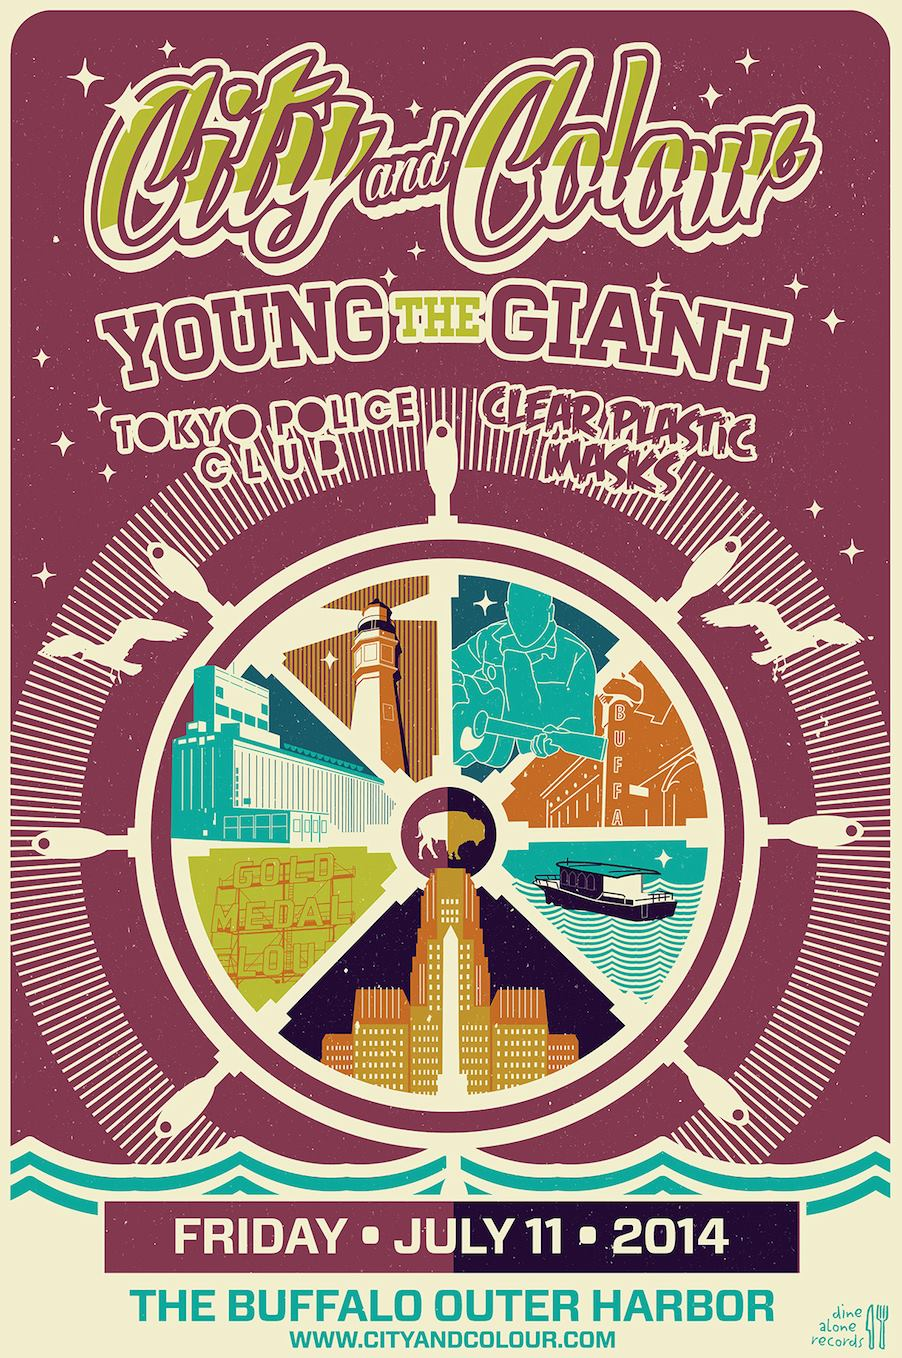 Tonight: City and Colour, Young the Giant, and Tokyo Police Club